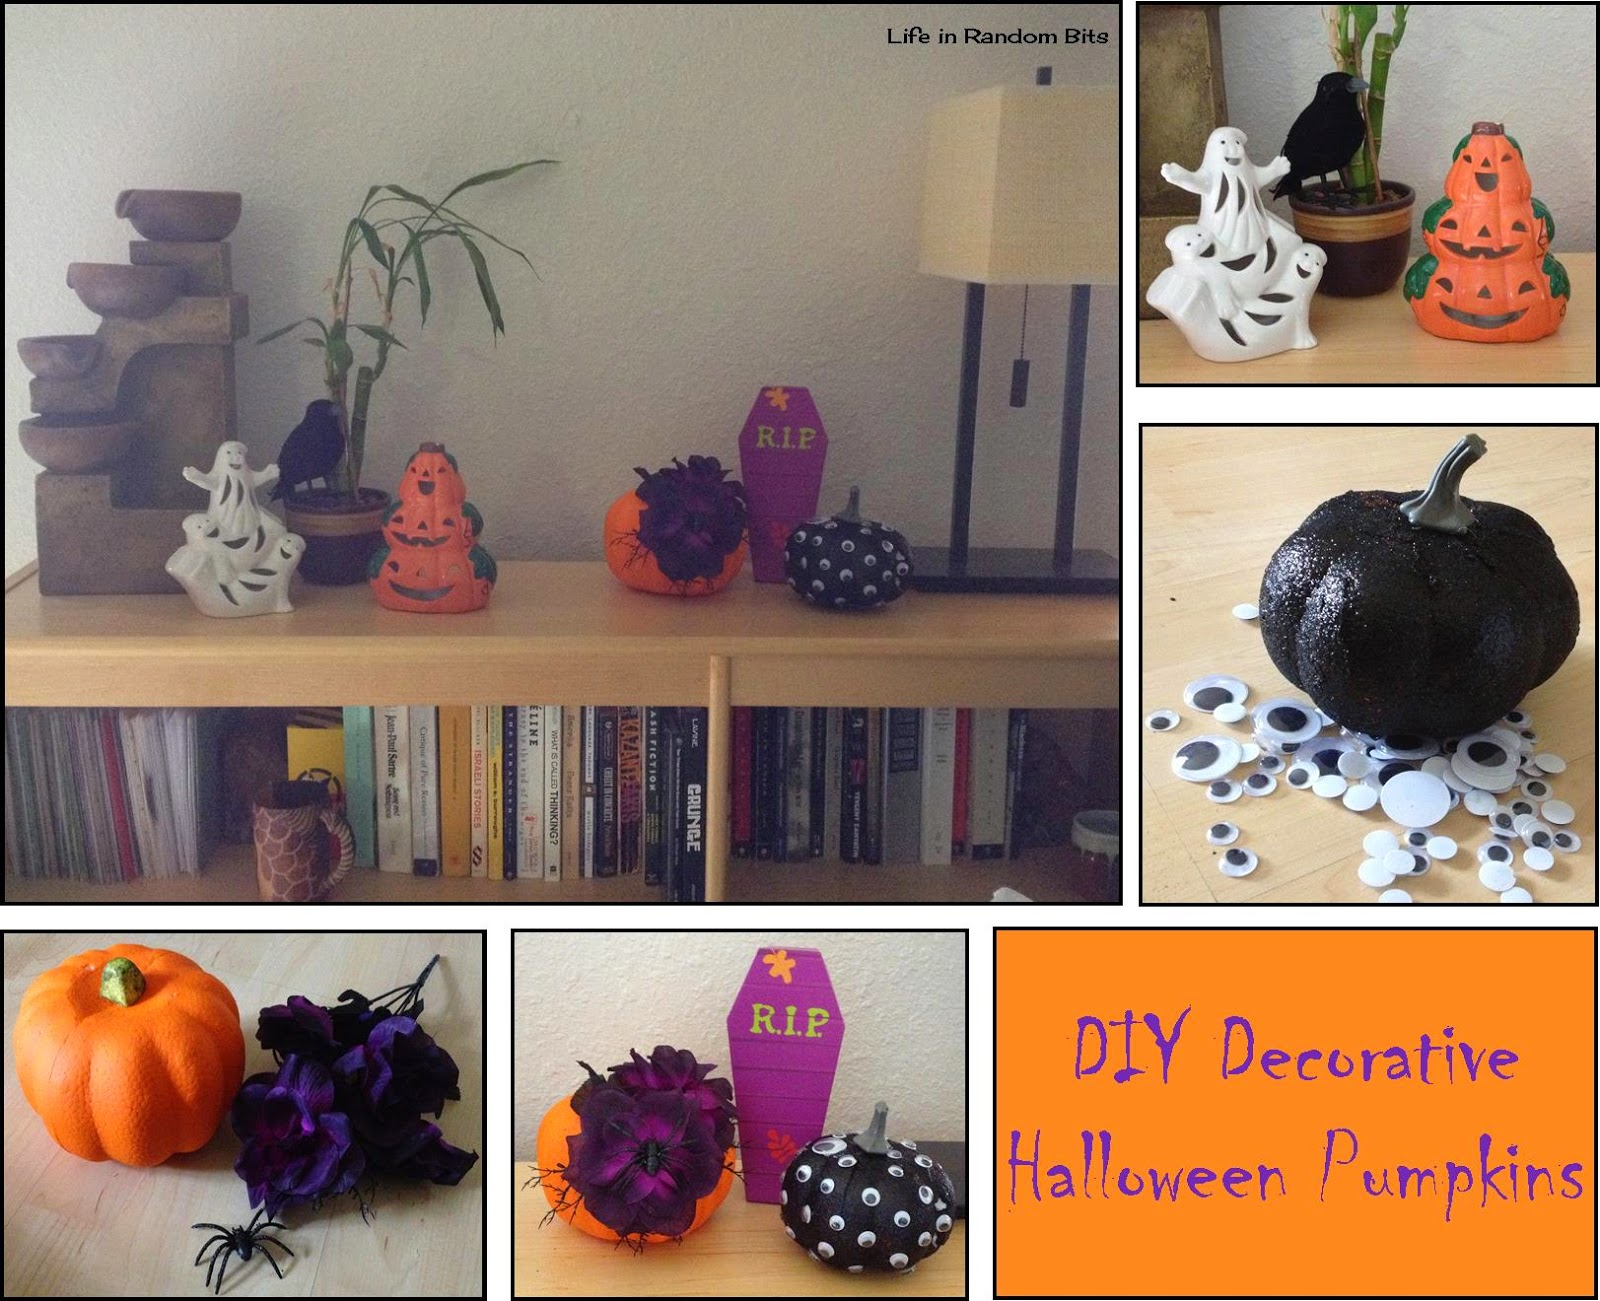 DIY decorative pumpkins ~ Life in Random Bits #halloween #diy #decorations #pumpkins